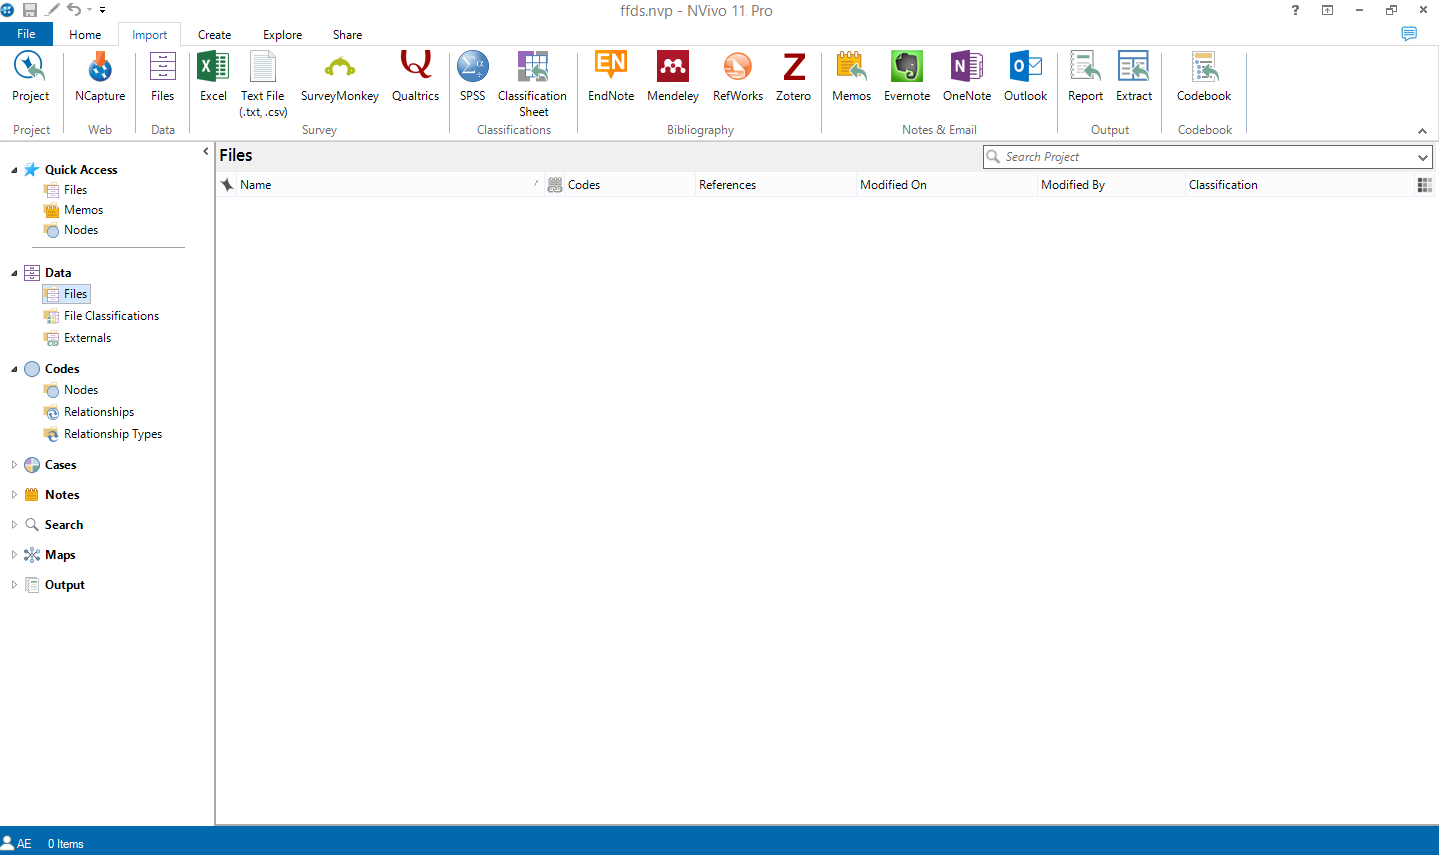 Download NVivo 11.4.1.1064 x86 x64 full license 100% working